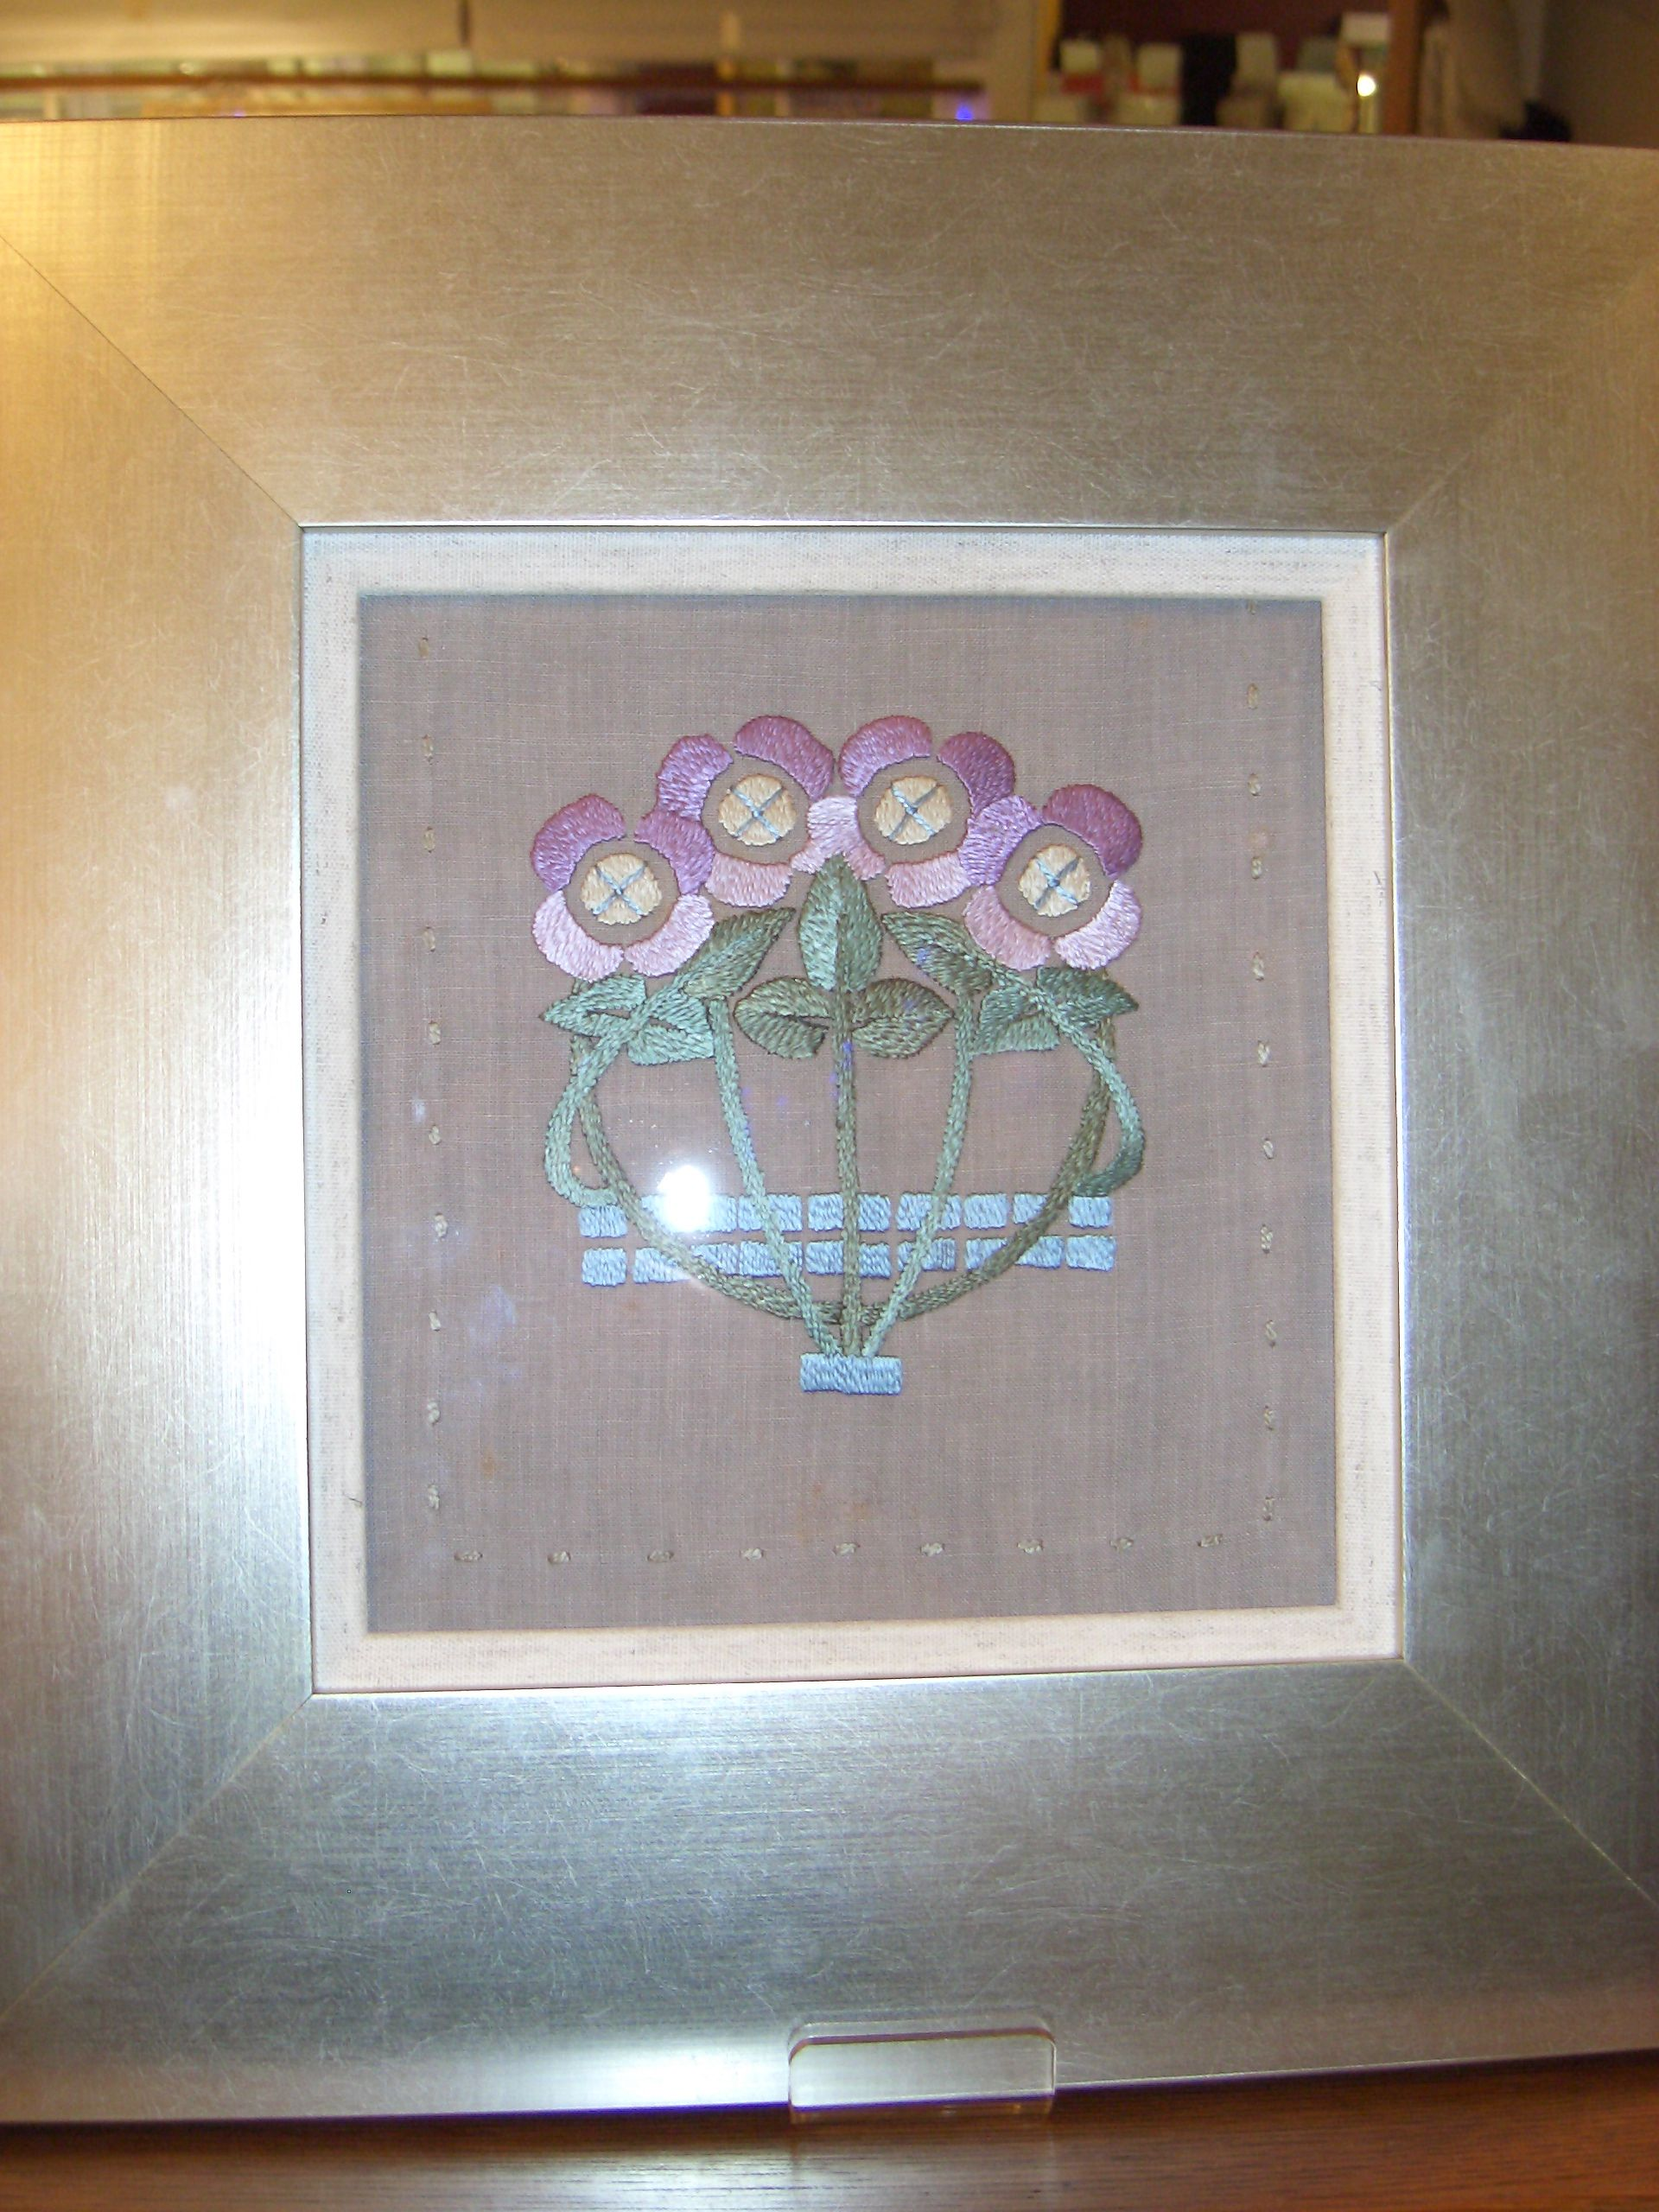 Framed Glasgow Style Embroidered Panel Silks On Unbleached Linen Decorative Boxes Arts Crafts Movement Frame